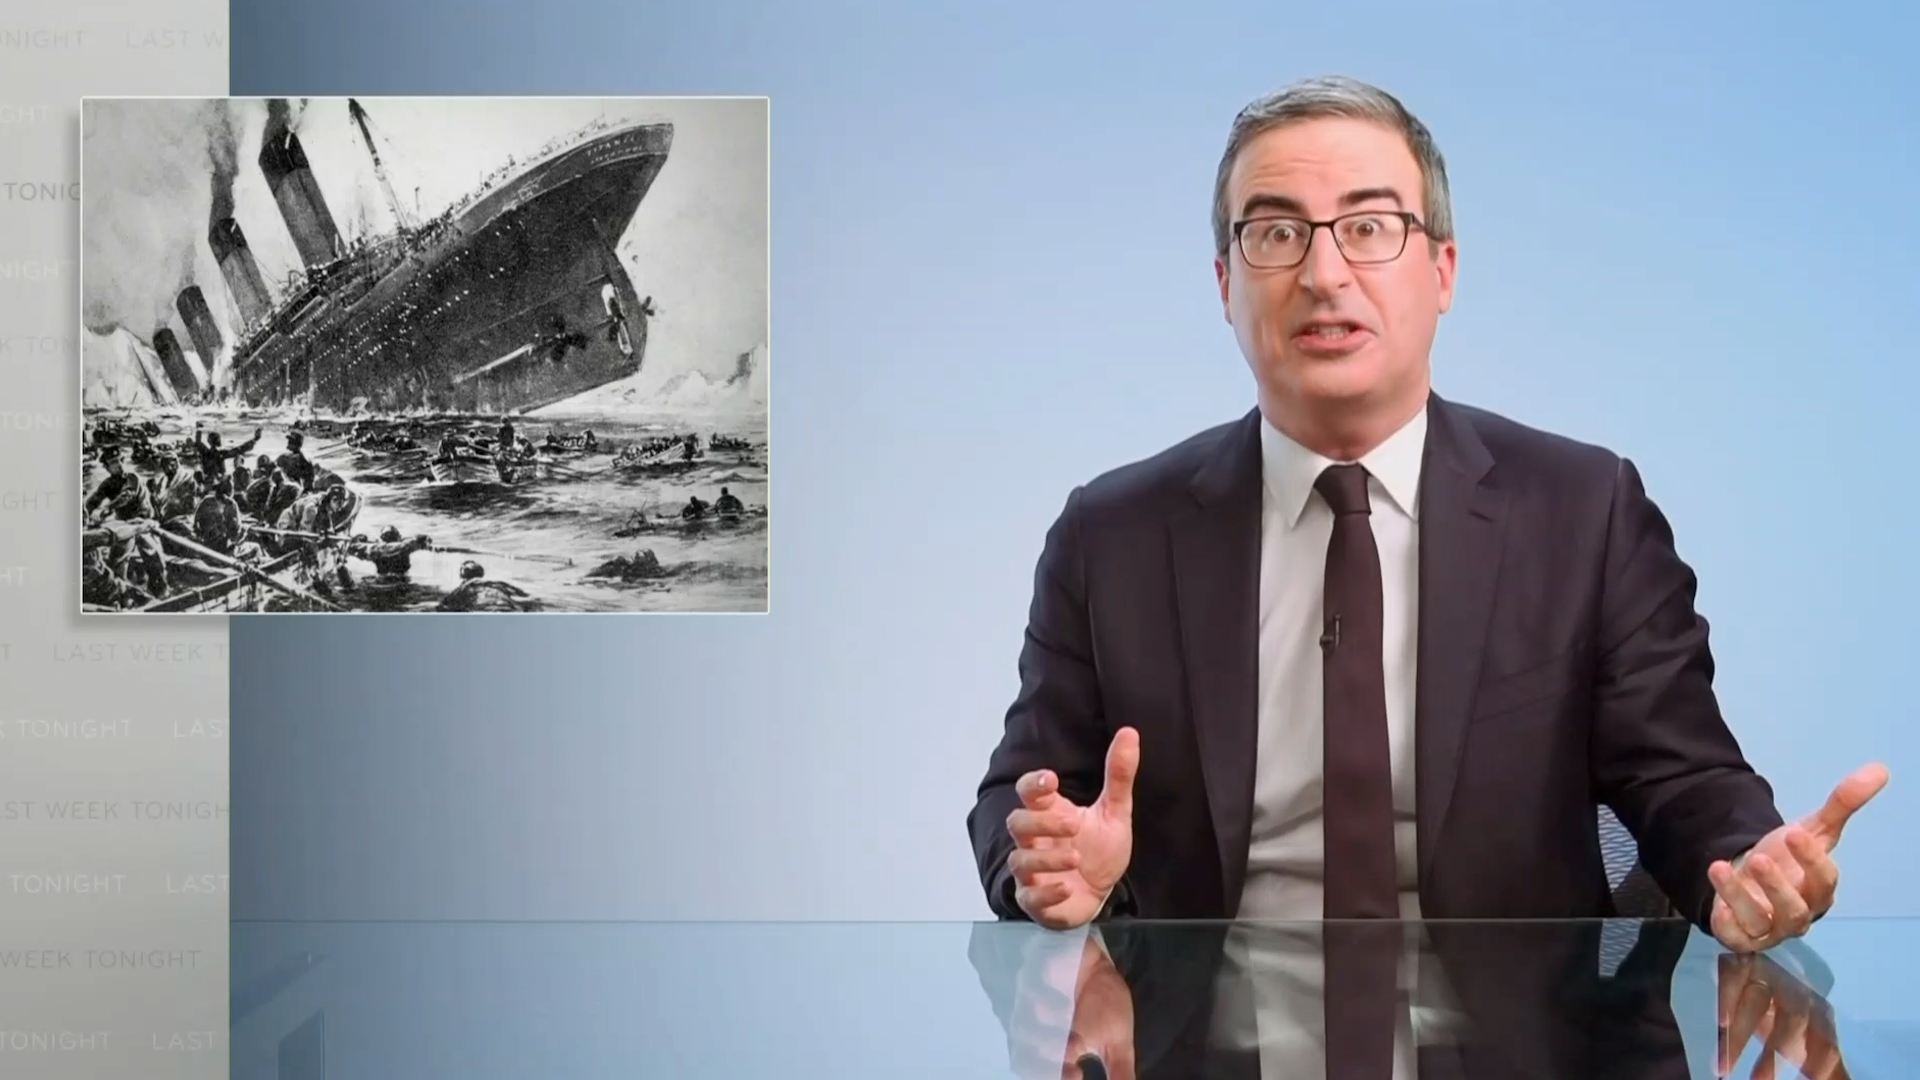 sports.yahoo.com: John Oliver highlights little-known story of Chinese Titanic survivors that is absolutely horrible